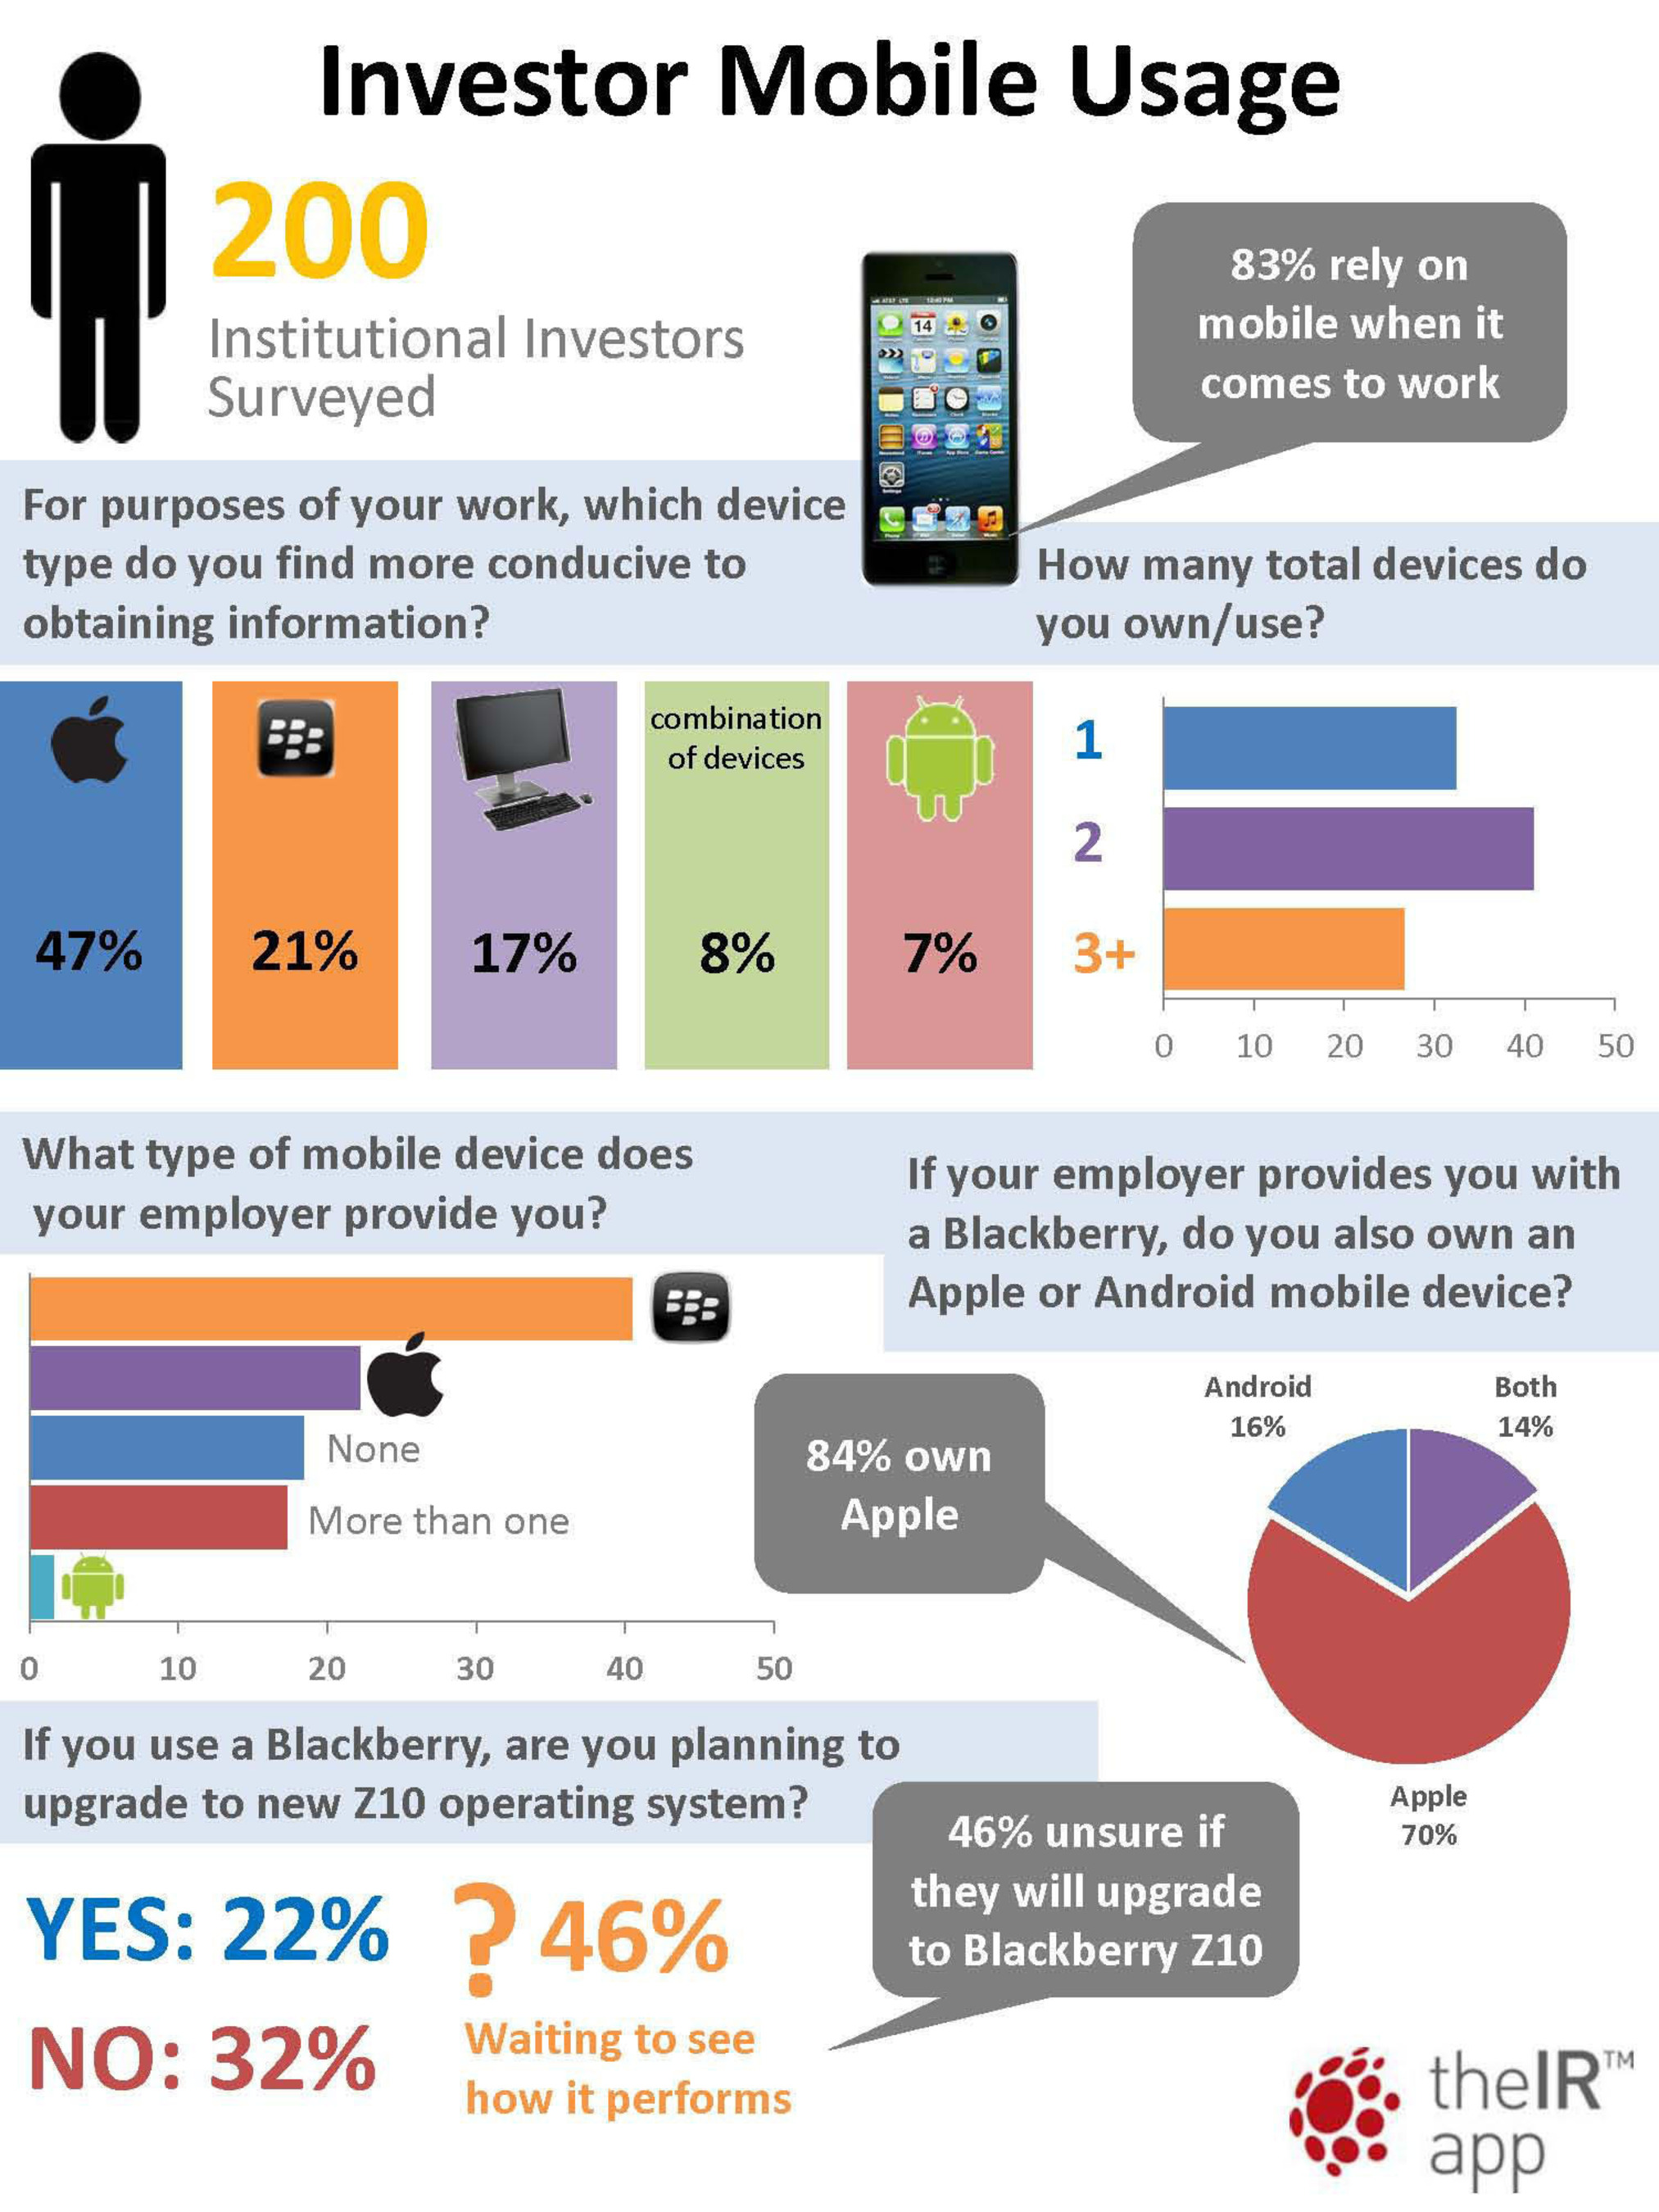 Institutional Investors are now more dependent on the mobile device for conducting their work than on desktop computing, according to a survey conducted by theIRapp(TM), the investor relations app building technology platform that allows public companies to optimize their IR content for iPhone, iPad and Android mobile devices. theIRapp's survey of 200 institutional investment professionals during the first quarter of 2013 showed that when it comes to their work, 83% rely on their mobile devices rather than the desktop.  ...